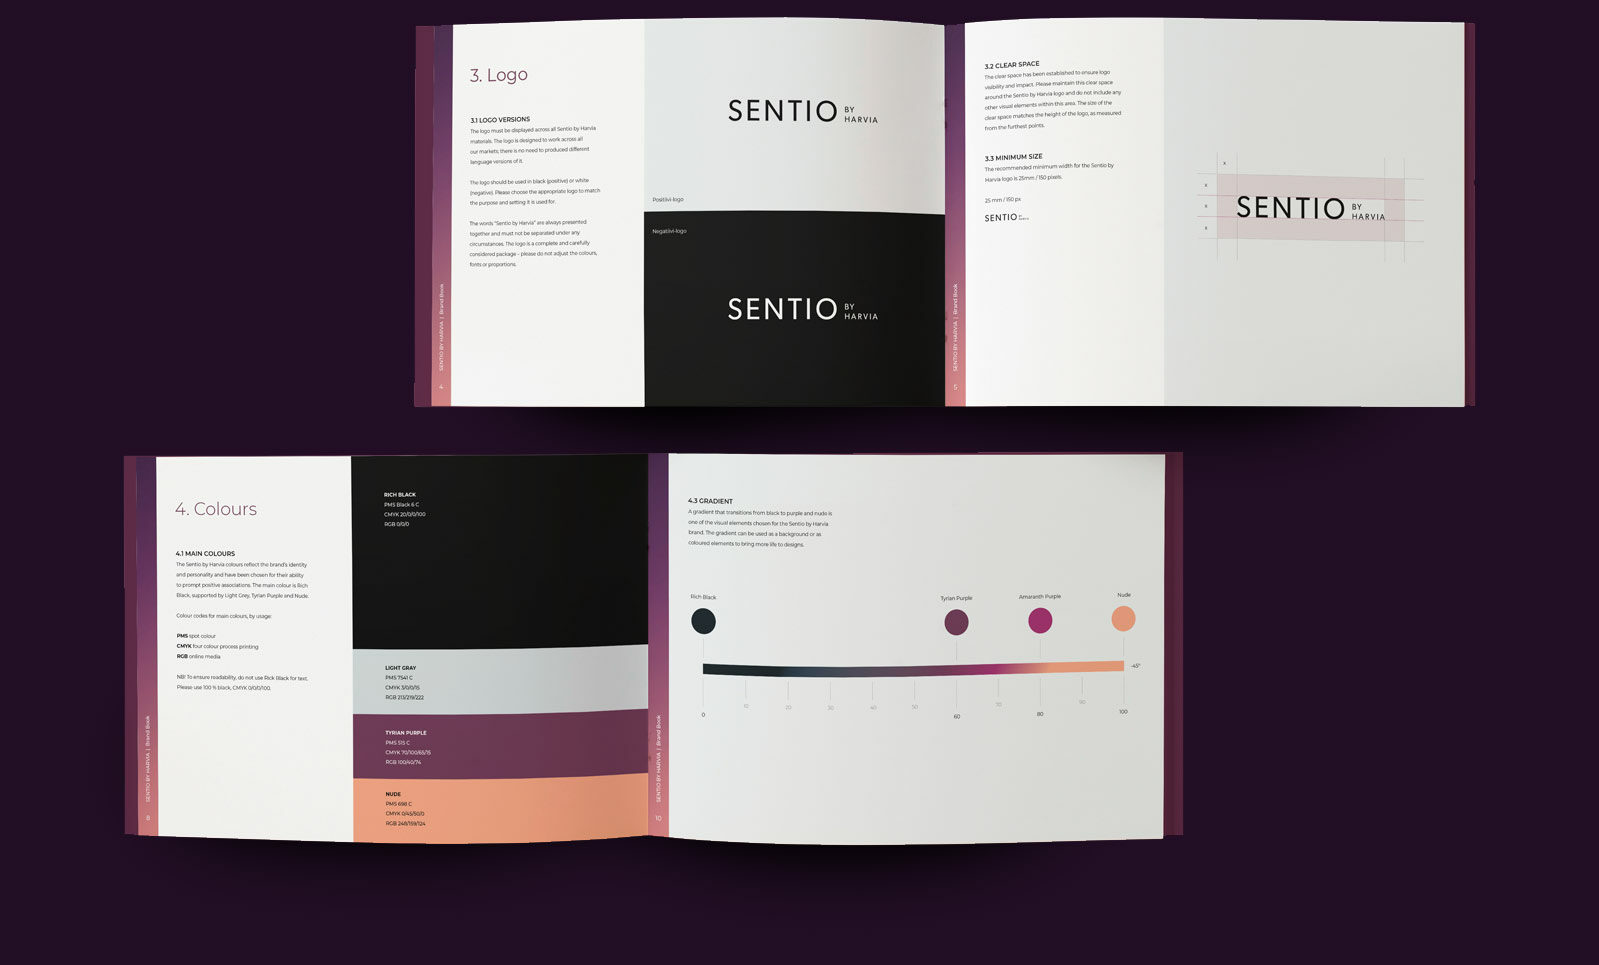 Brand book by LM Someco